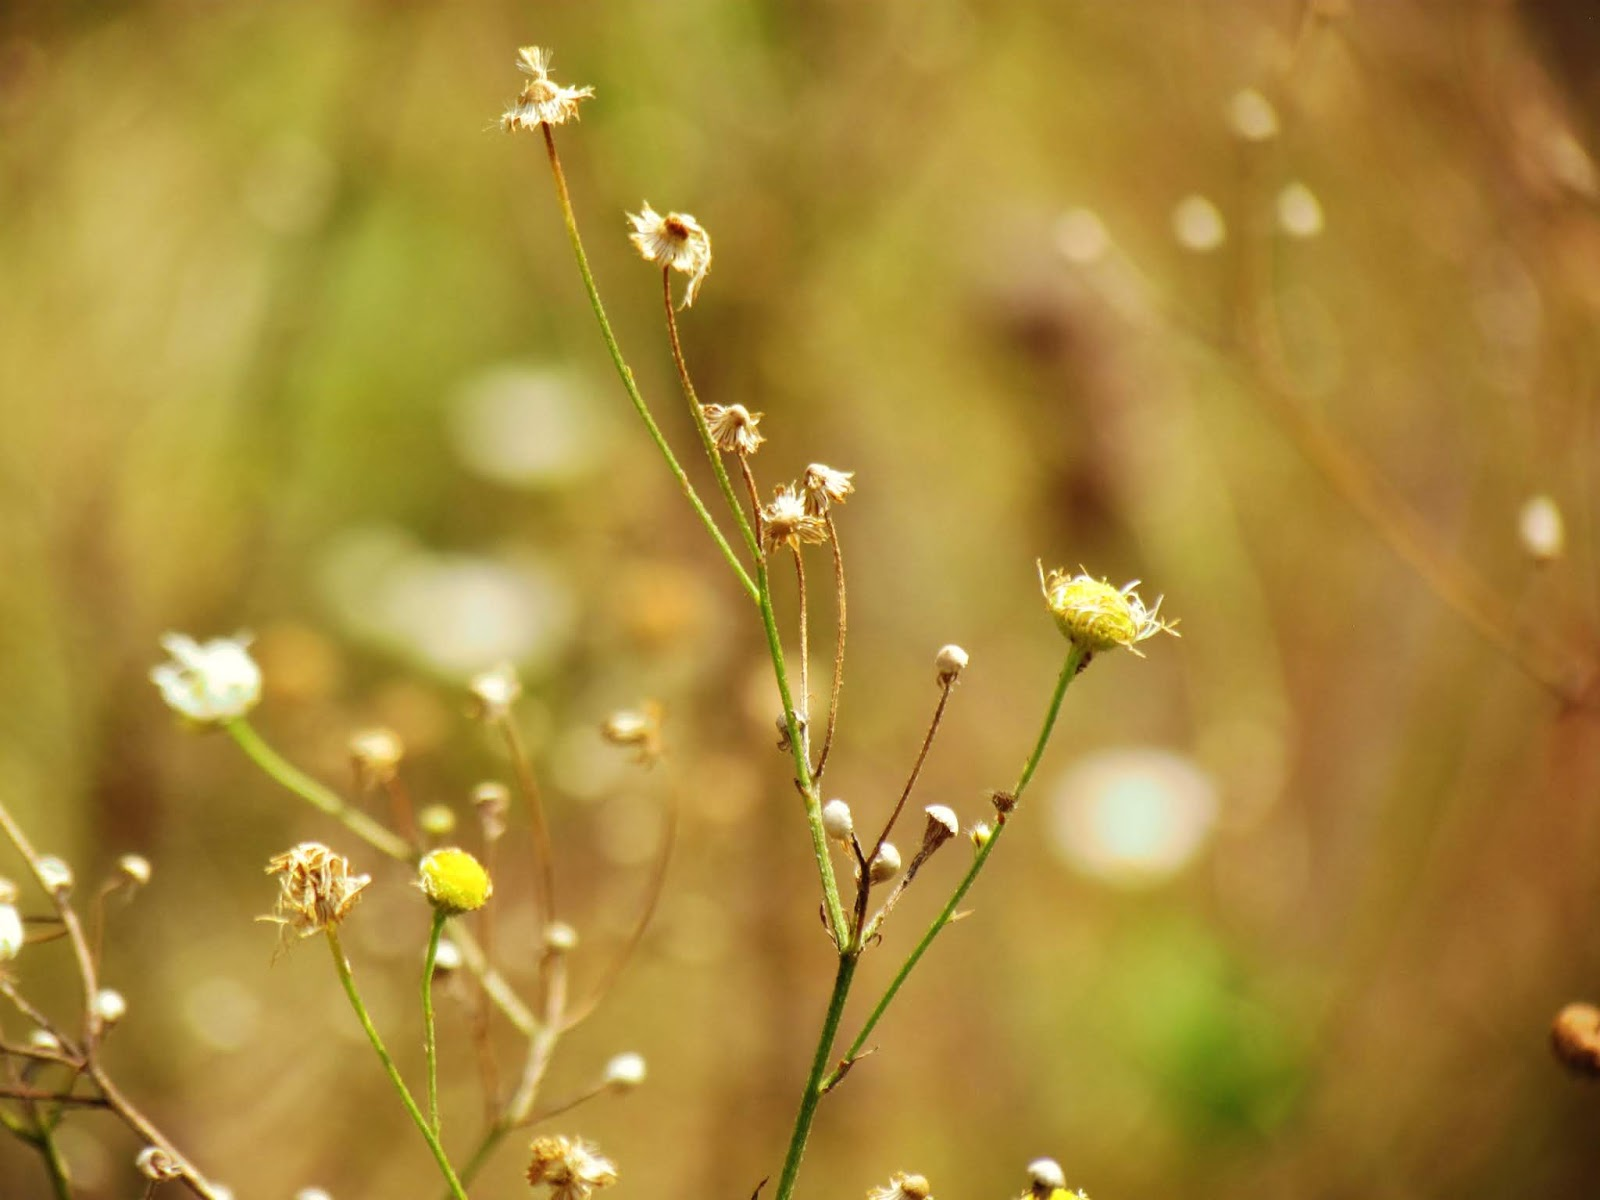 A meadow of wildflowers bathed in golden light with bees